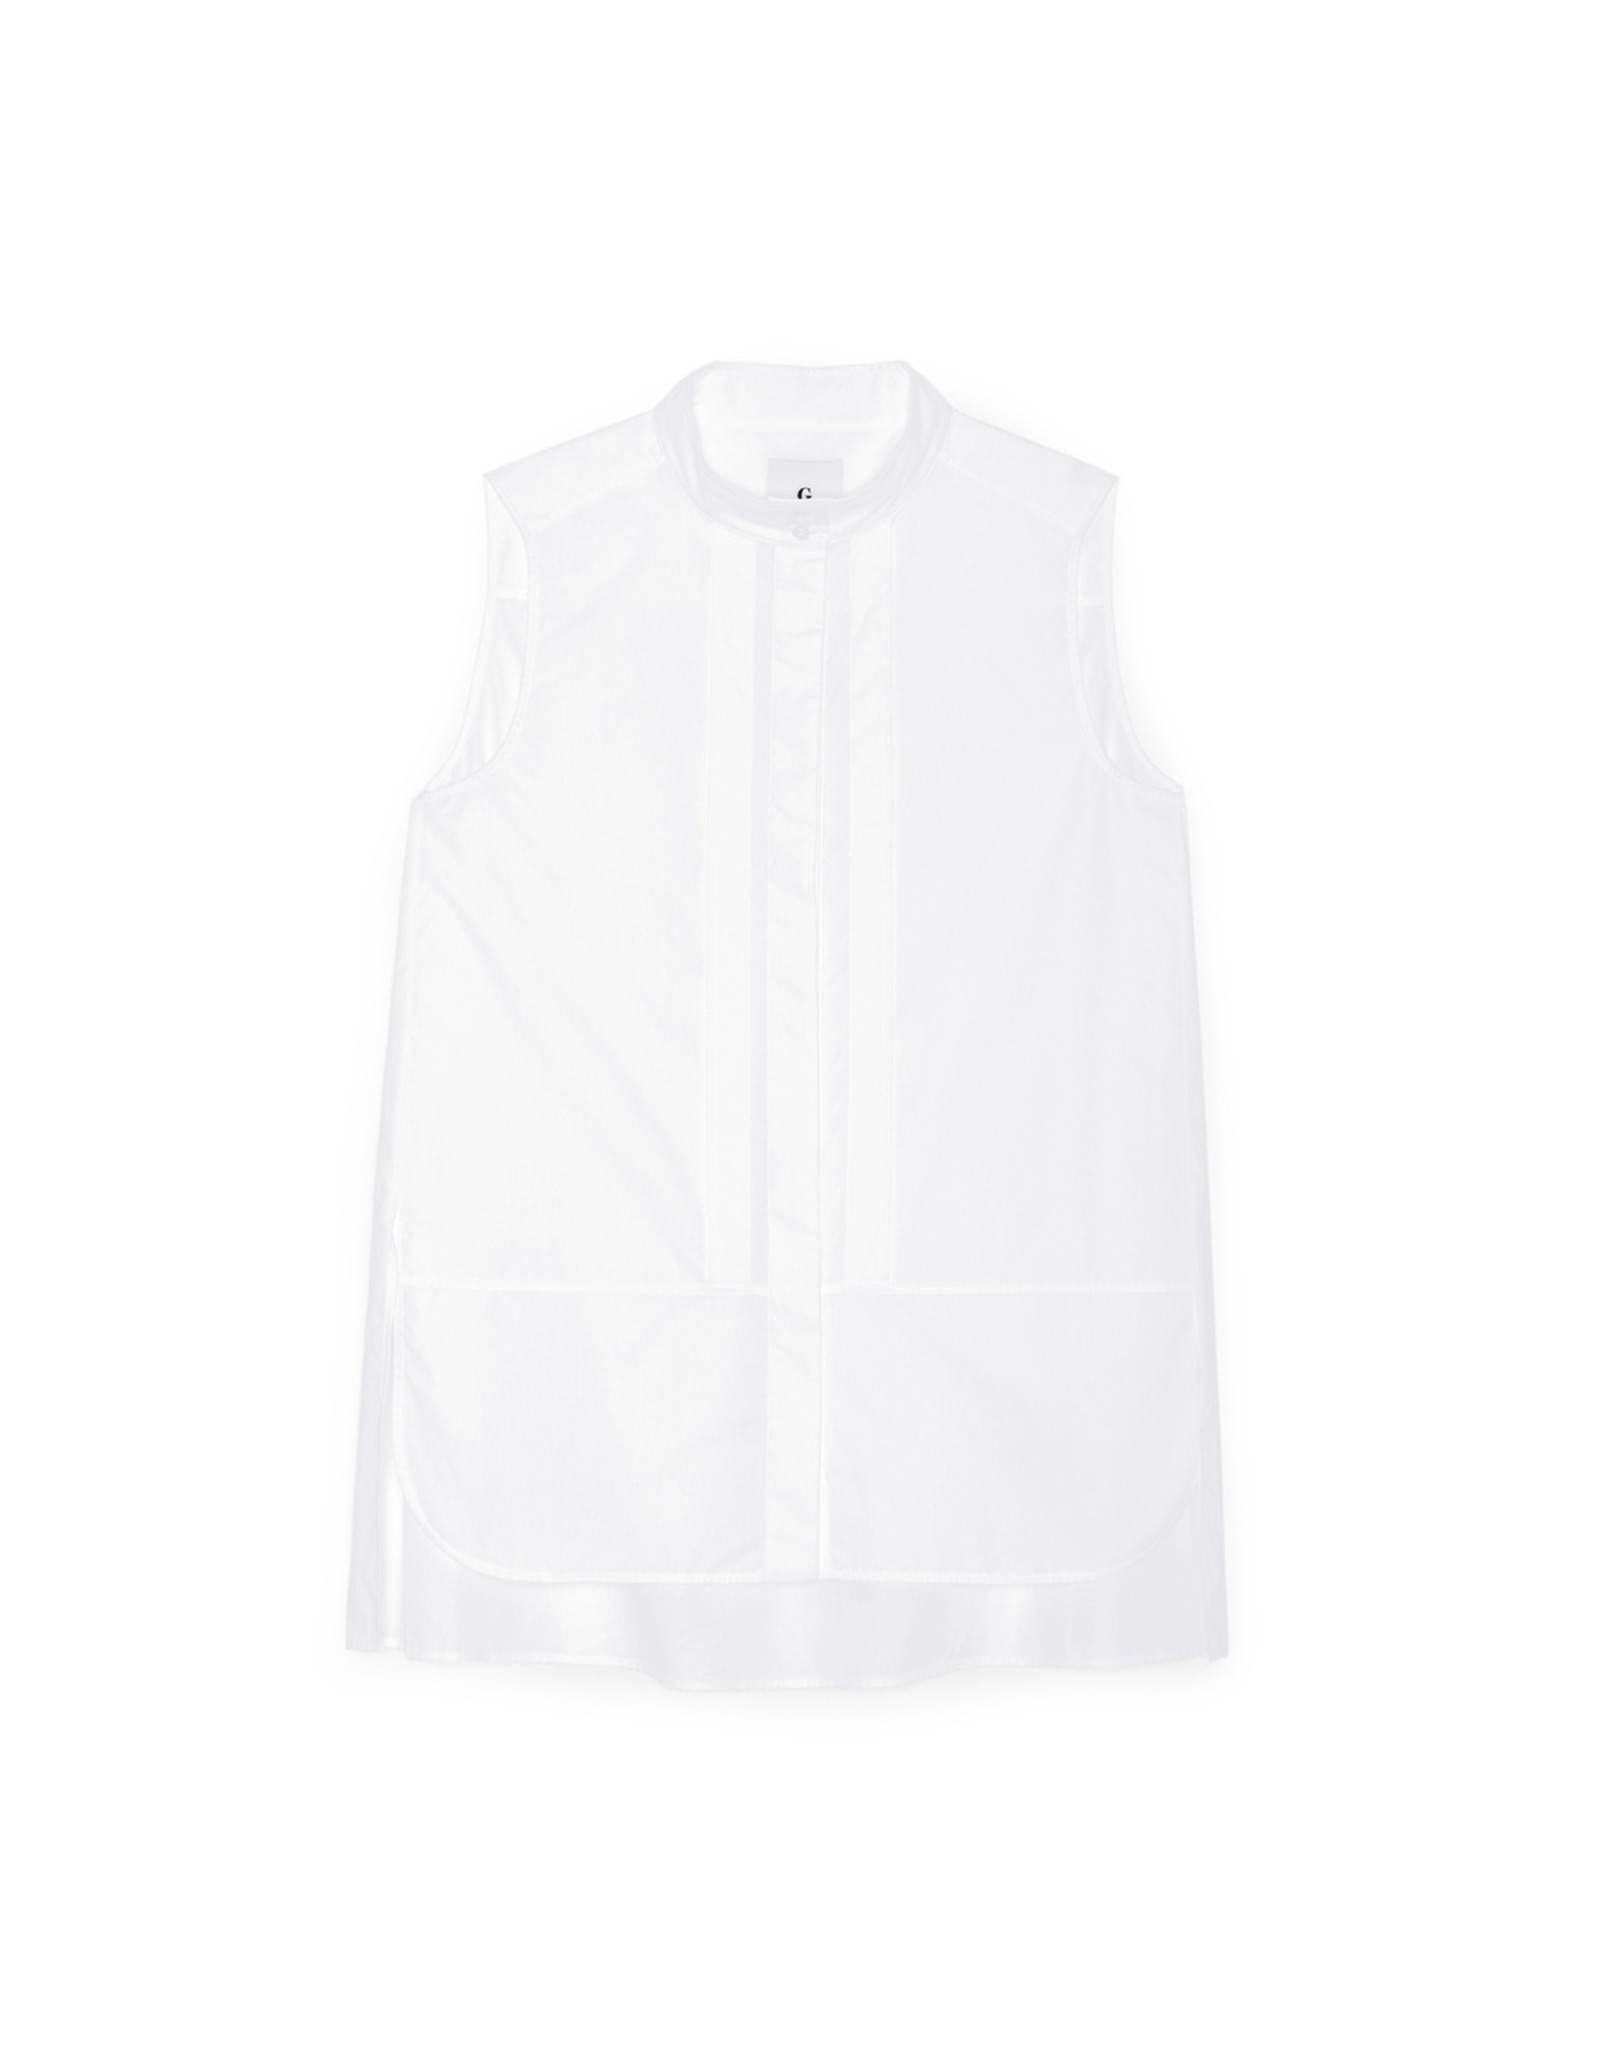 G. Label G. Label Casey Pleat Collar Shirt (Color: White, Size: 0)